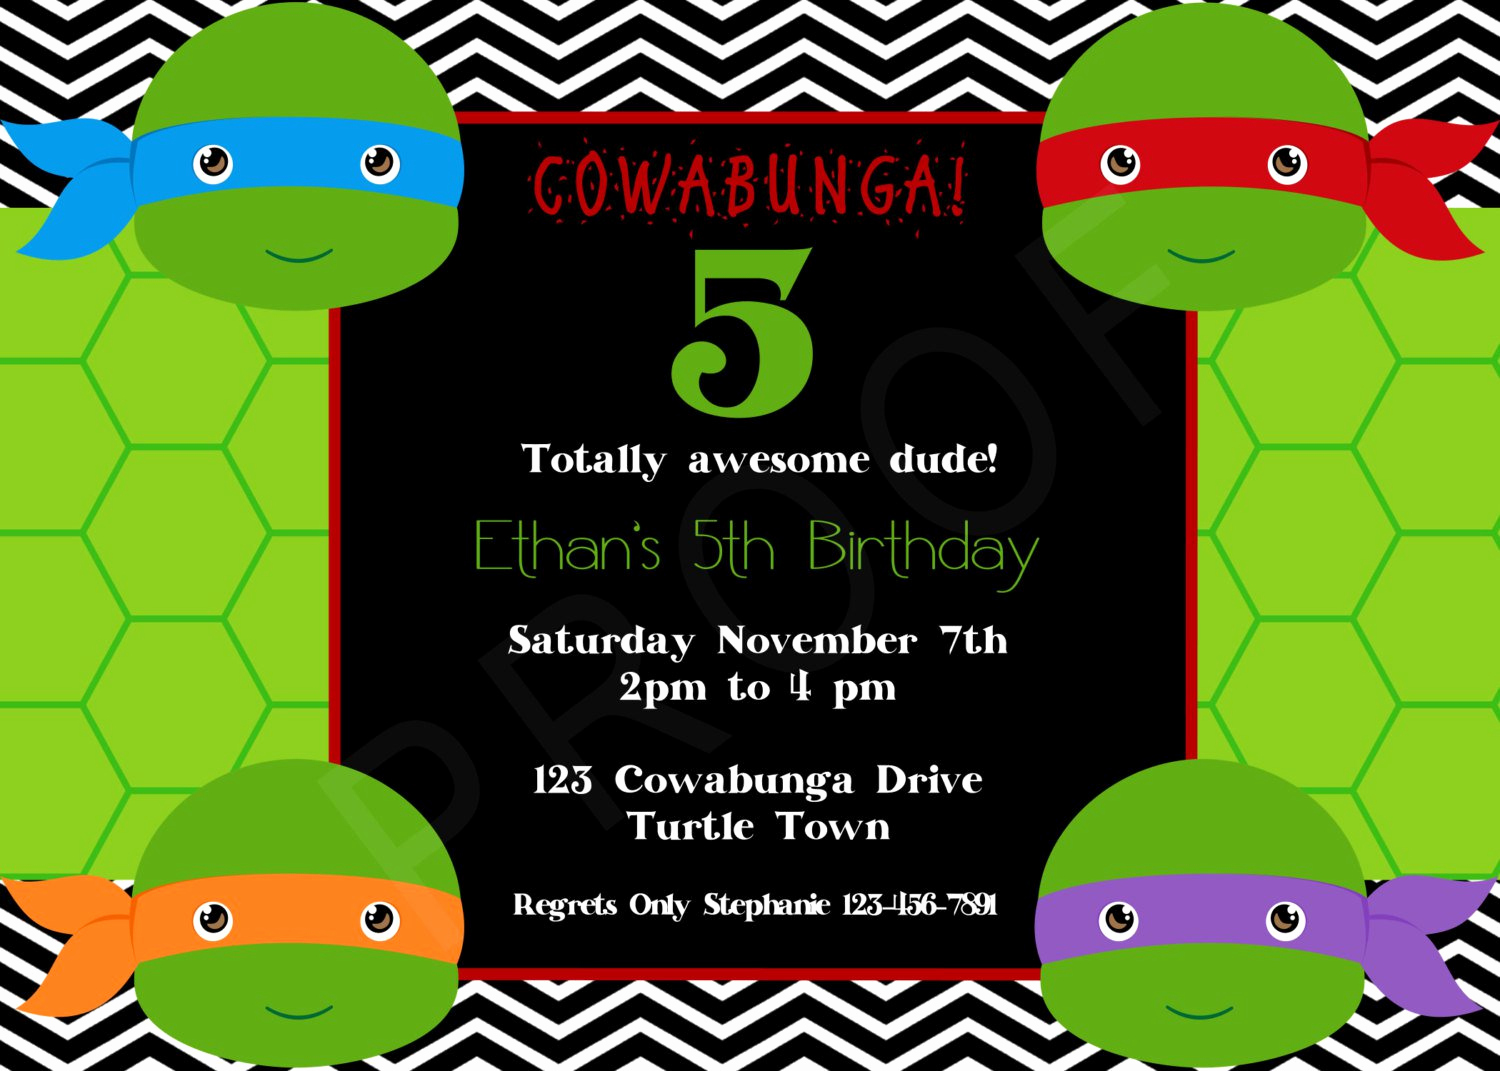 Ninja Turtle Invitation Template Fresh Teenage Mutant Ninja Turtles Birthday Party Invitations Free